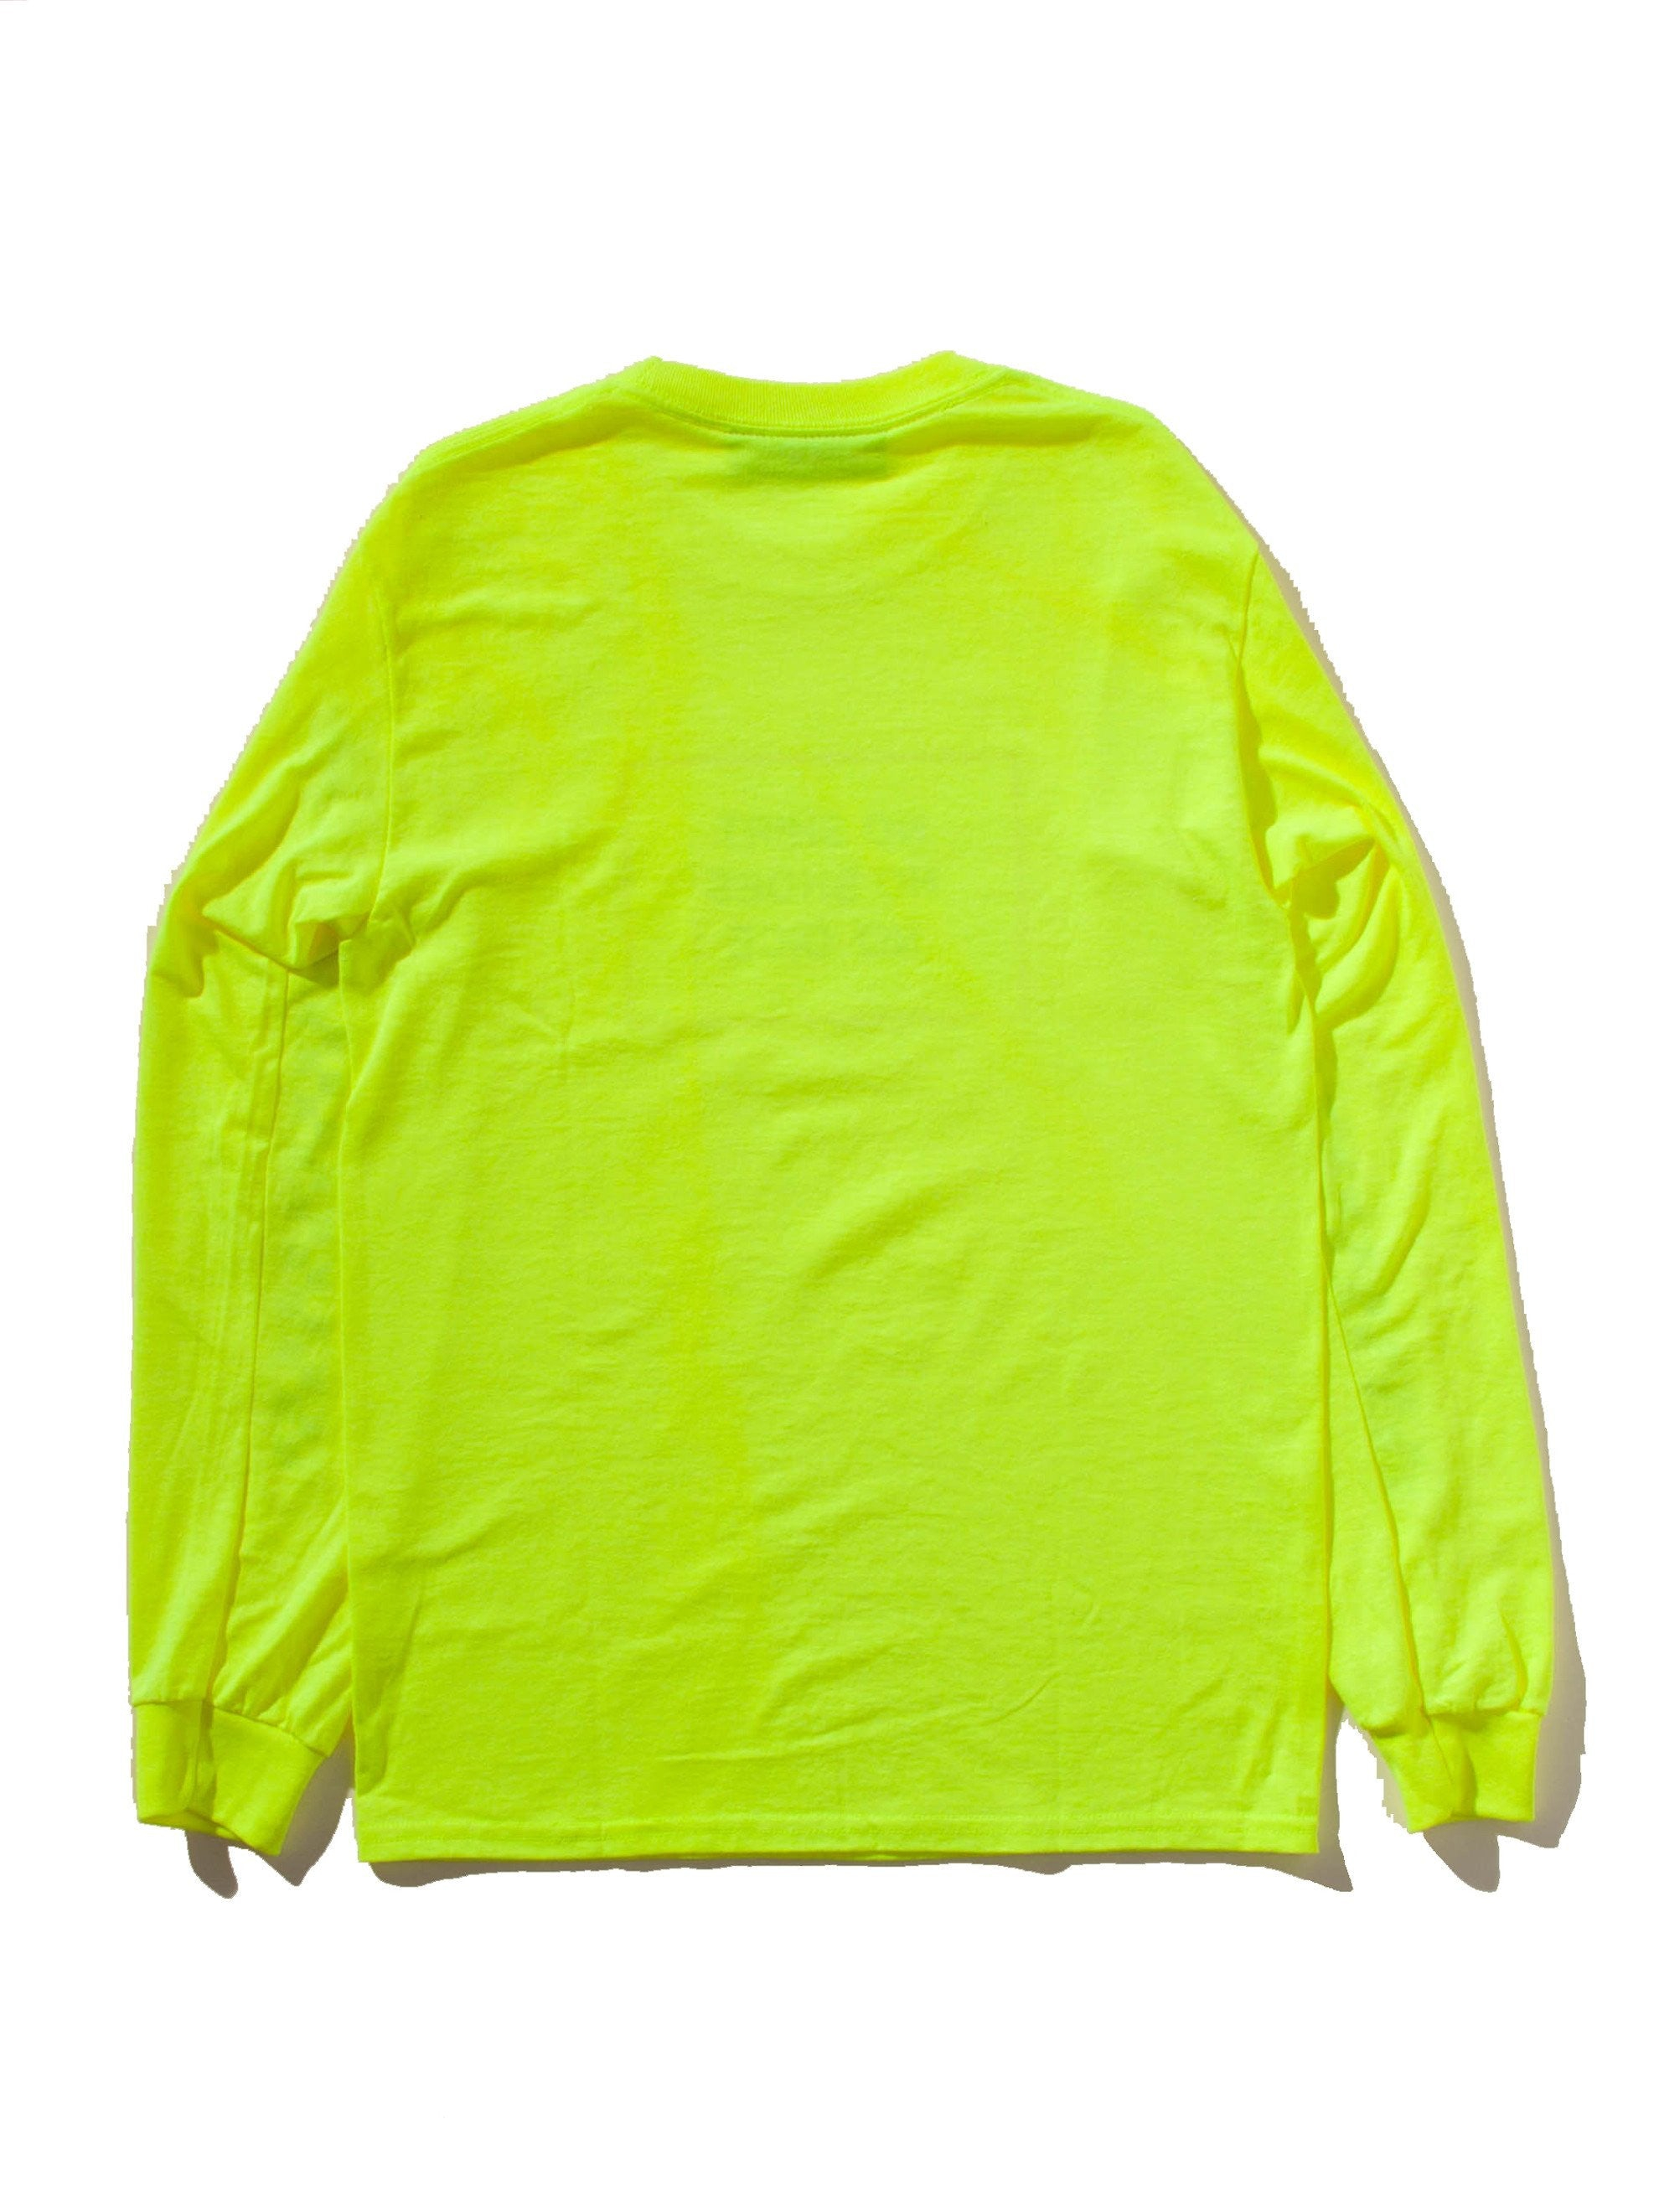 Yellow All American Burger Long Sleeve T-Shirt 8